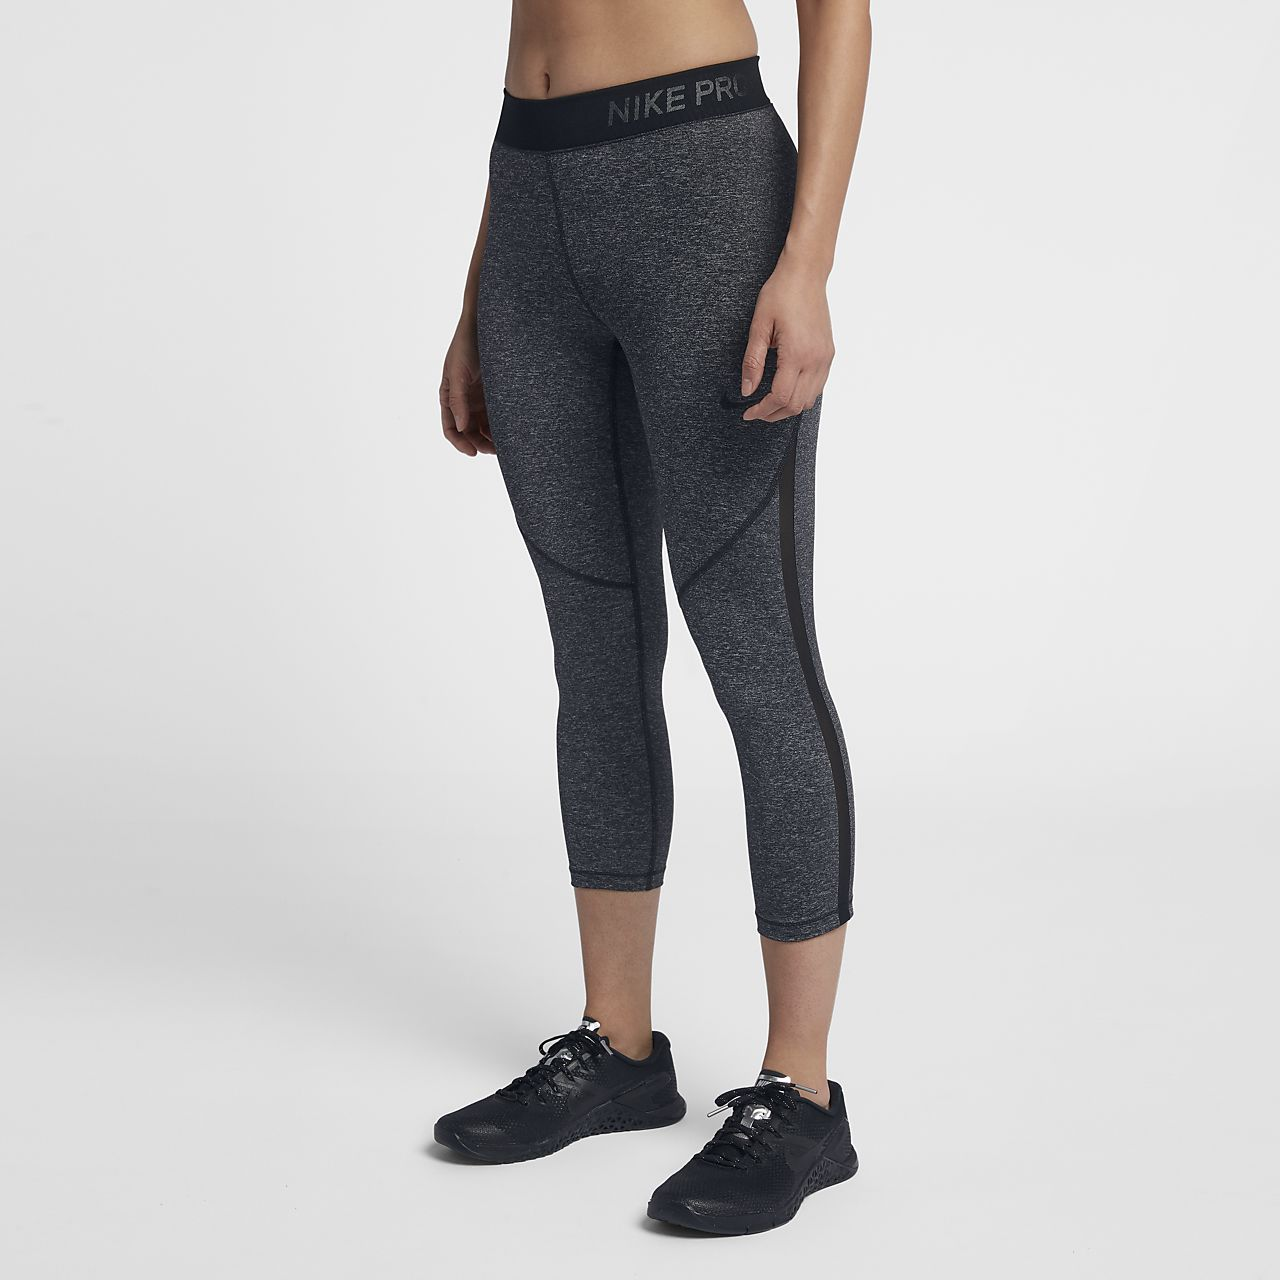 ... Nike Pro HyperCool Women's Training Capris